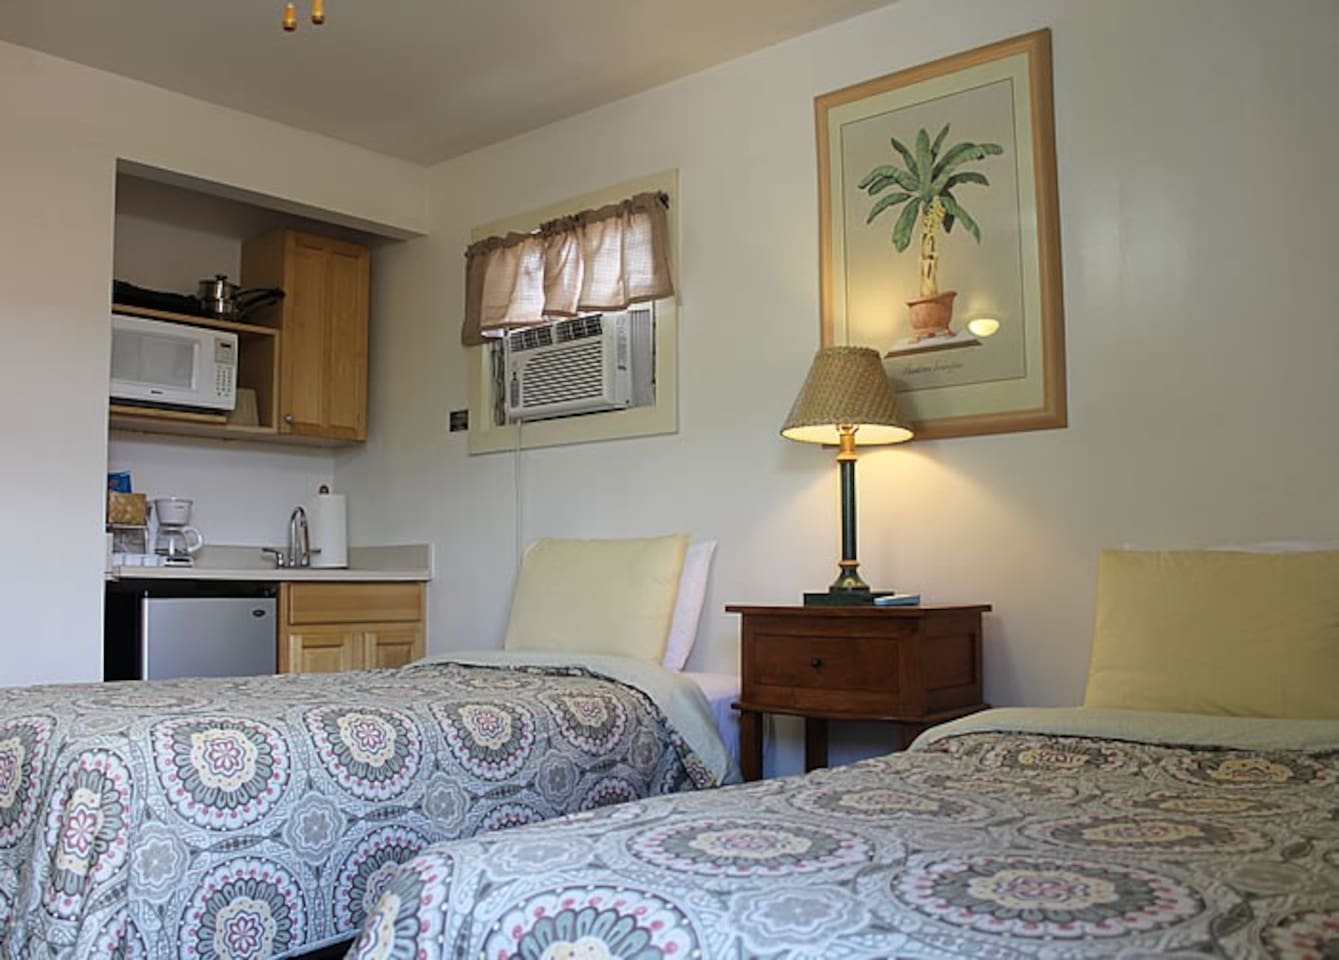 Deluxe room with a kitchenette unit, air conditioning, flat screen TV and mini fridge.